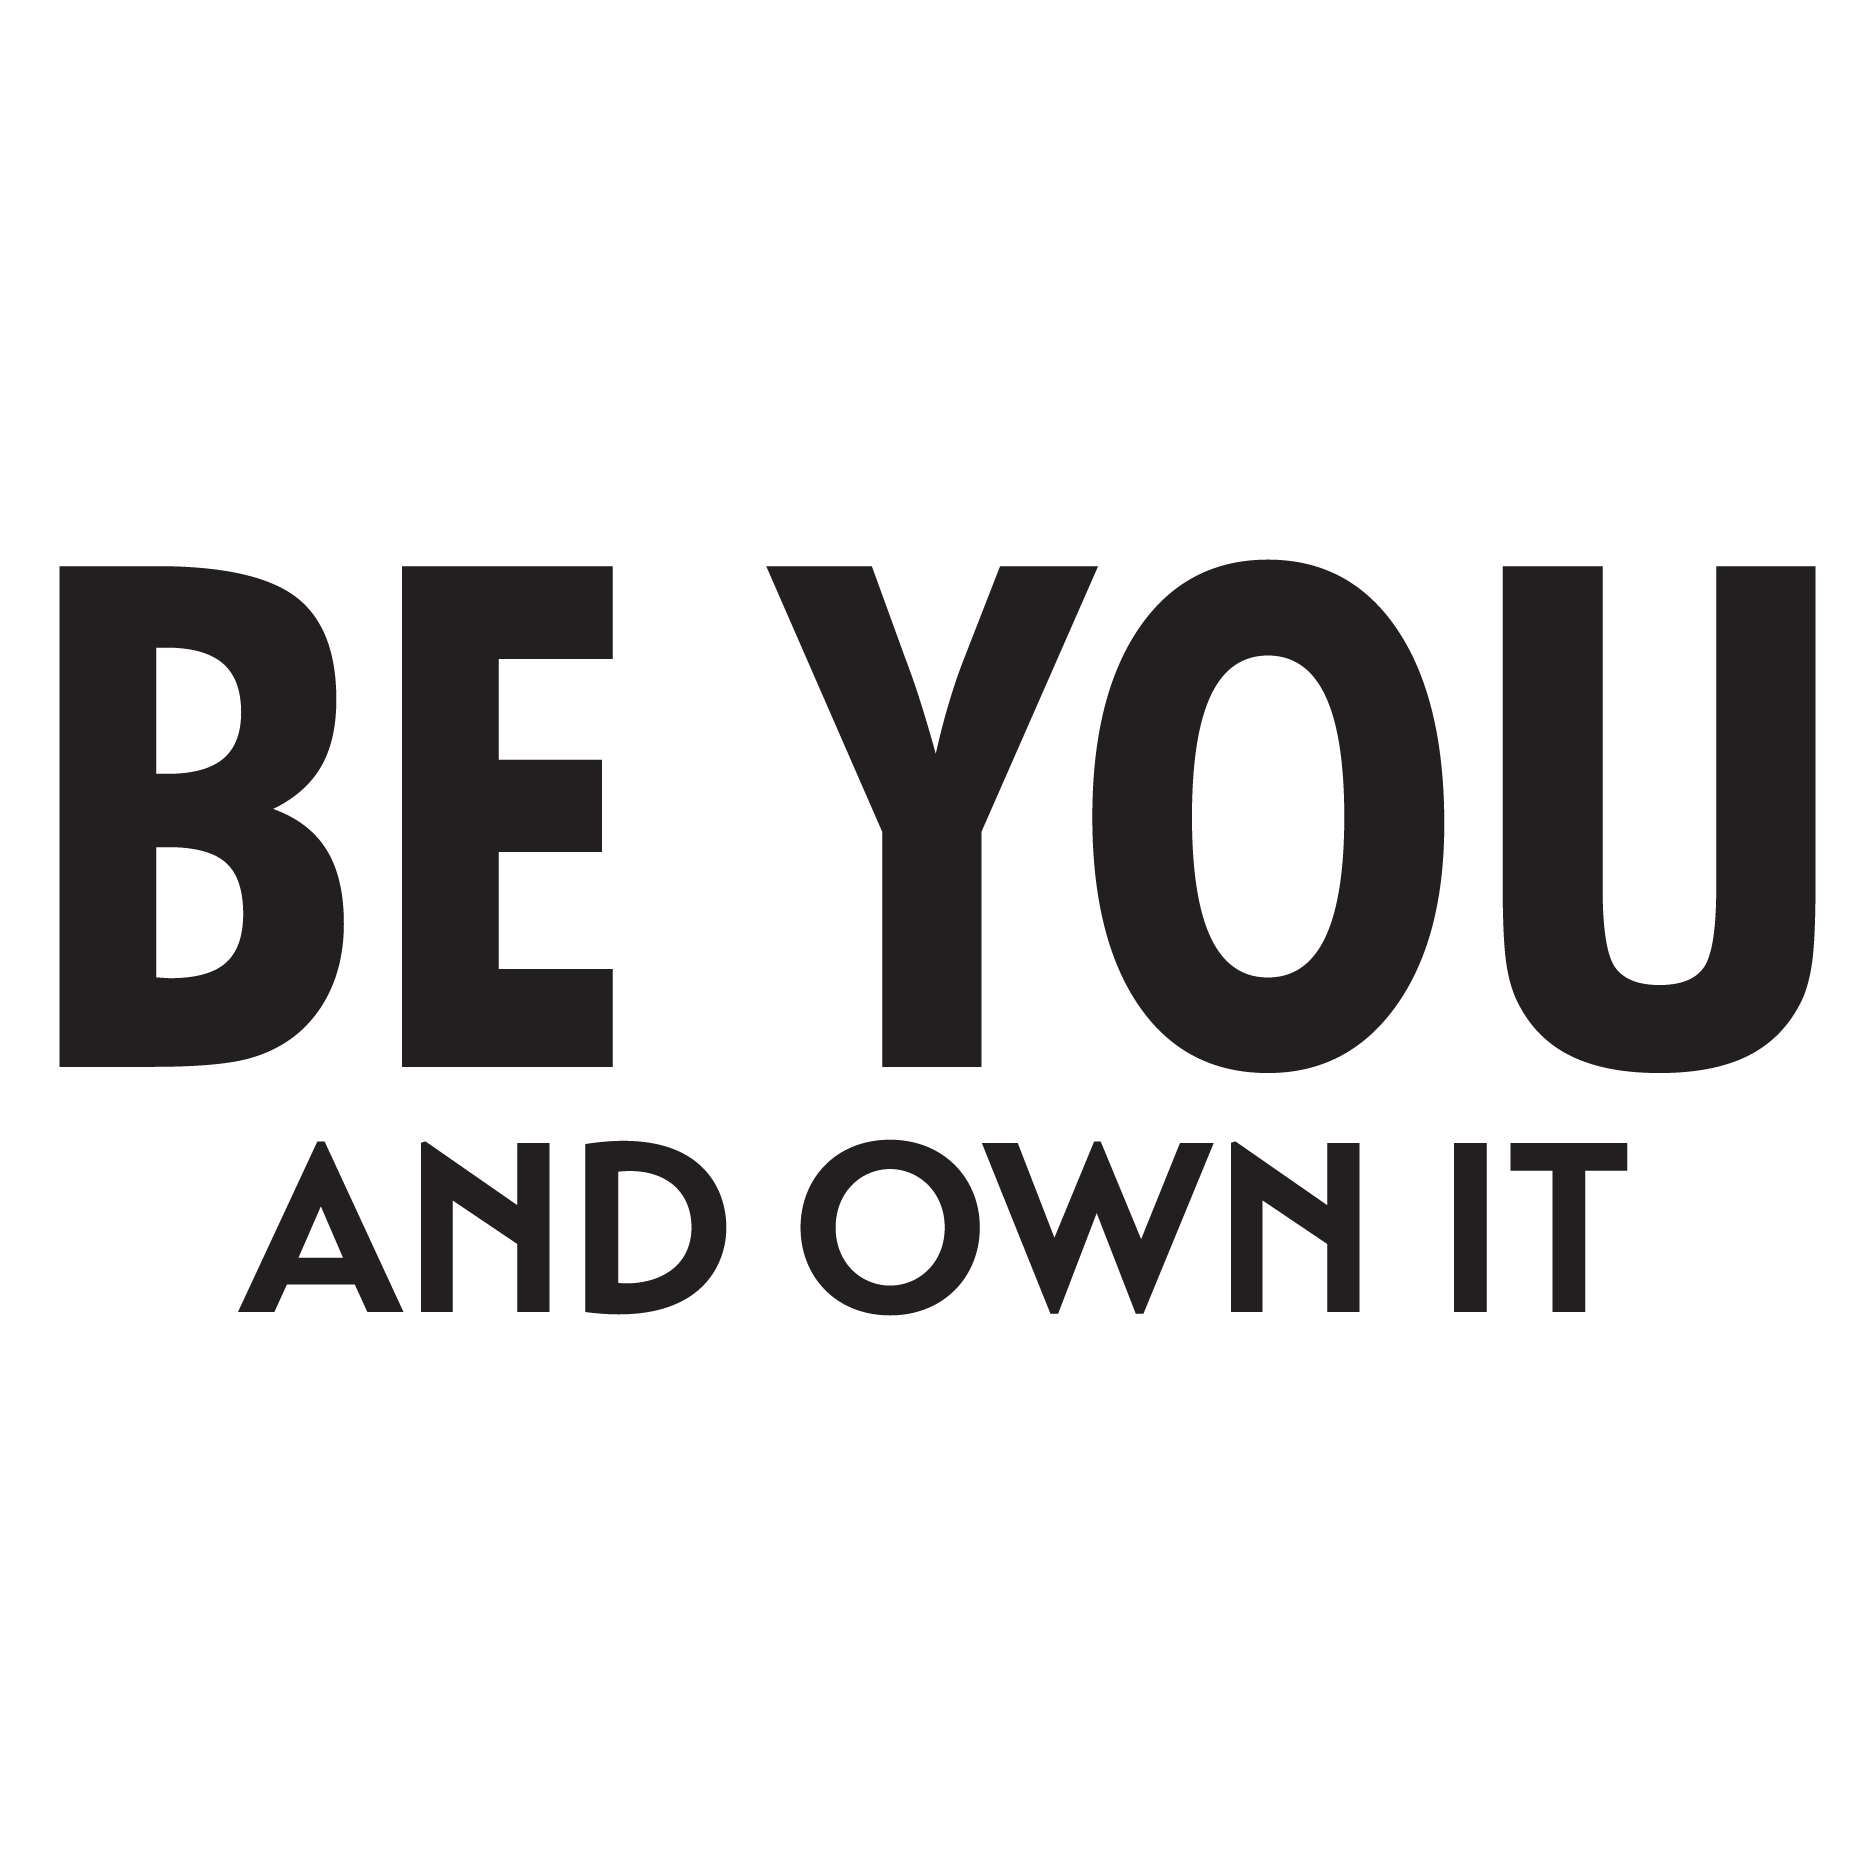 Be You And Own It Girls Wall Quotes Decal Wallquotes Com